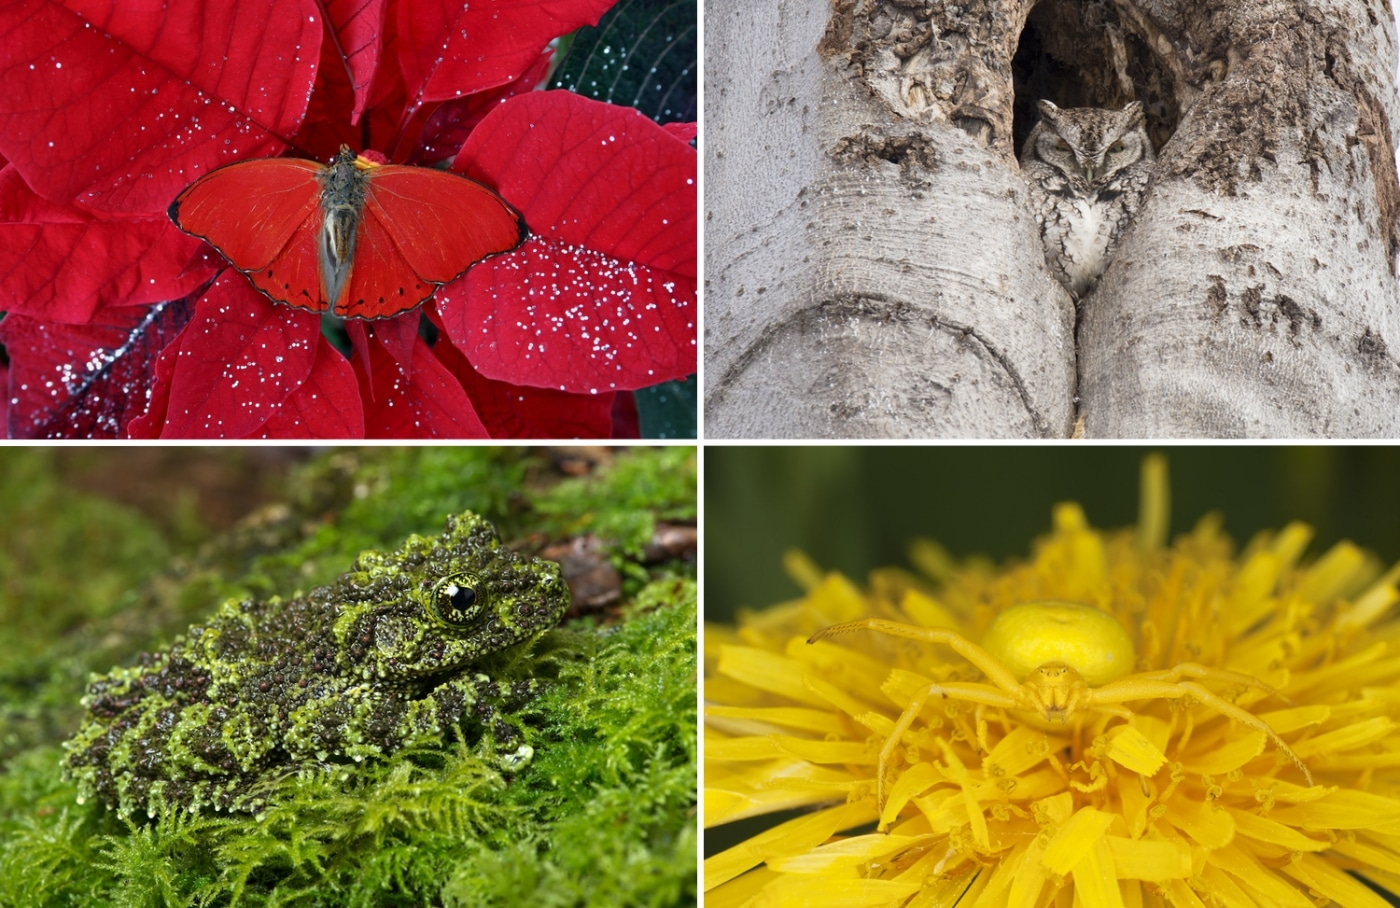 20 Camouflage Animals That You Have To See To Believe